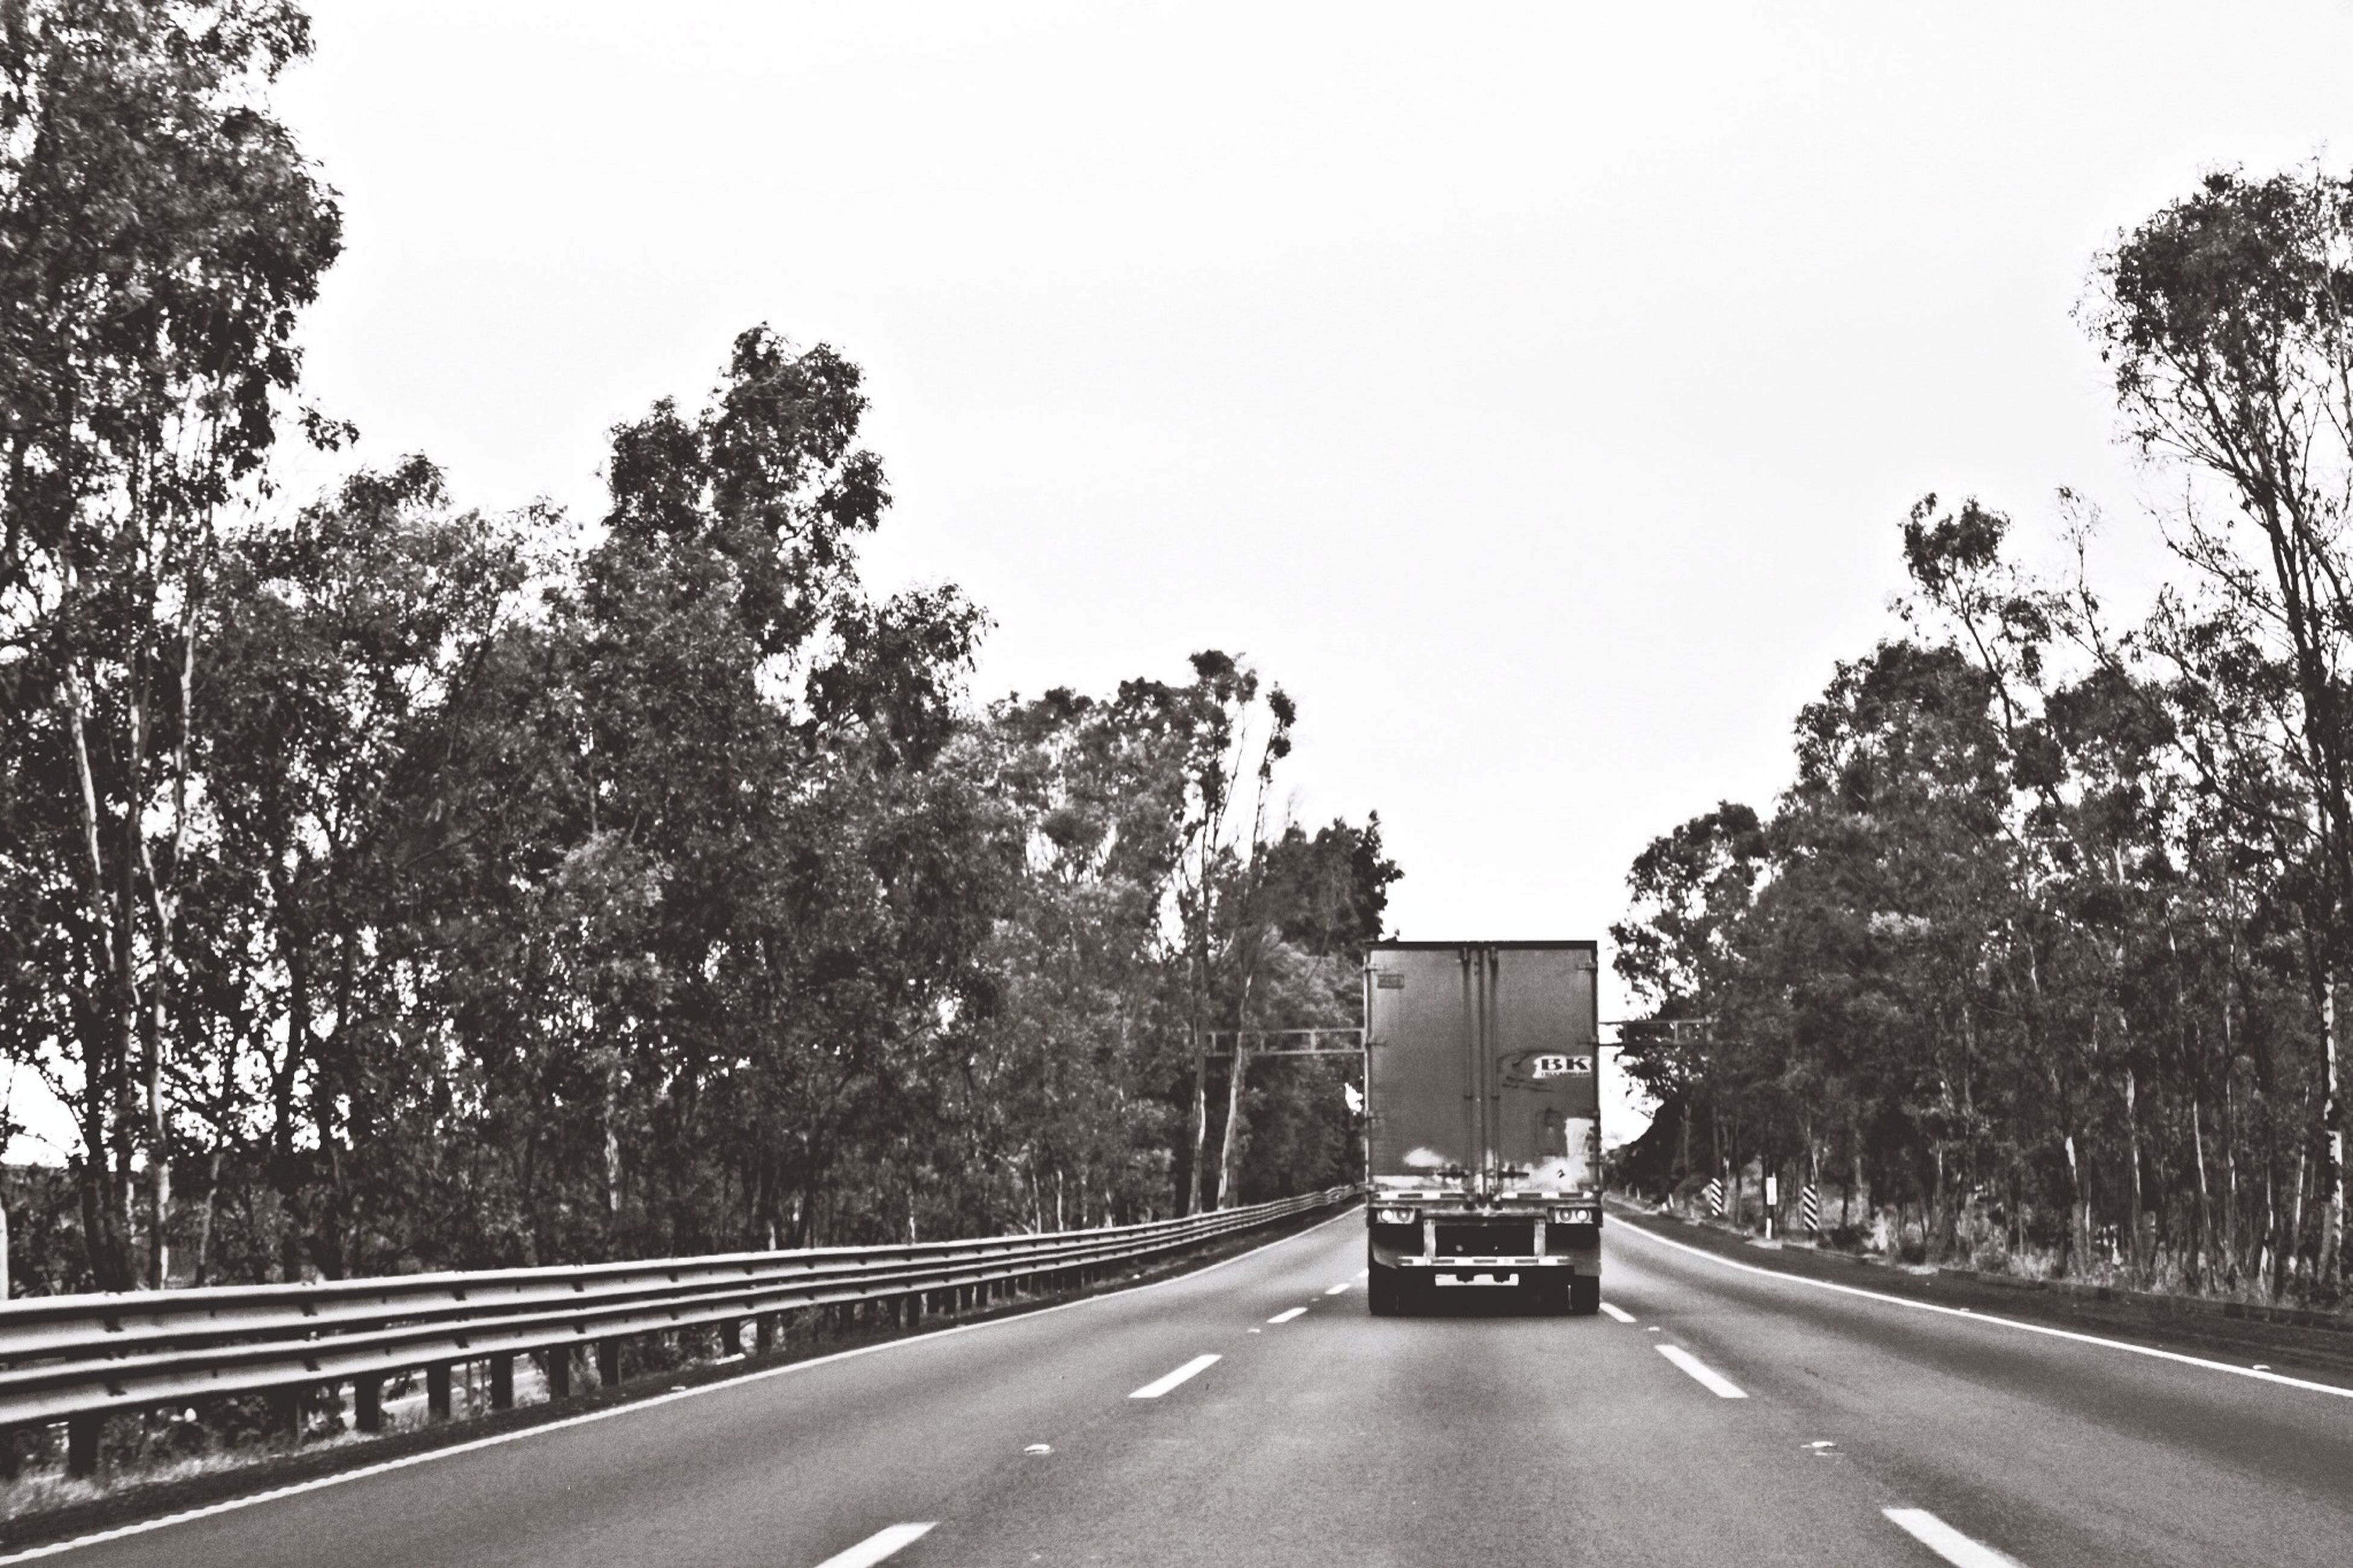 transportation, road, the way forward, tree, road marking, clear sky, diminishing perspective, car, street, land vehicle, vanishing point, empty road, treelined, empty, mode of transport, copy space, sky, long, day, outdoors